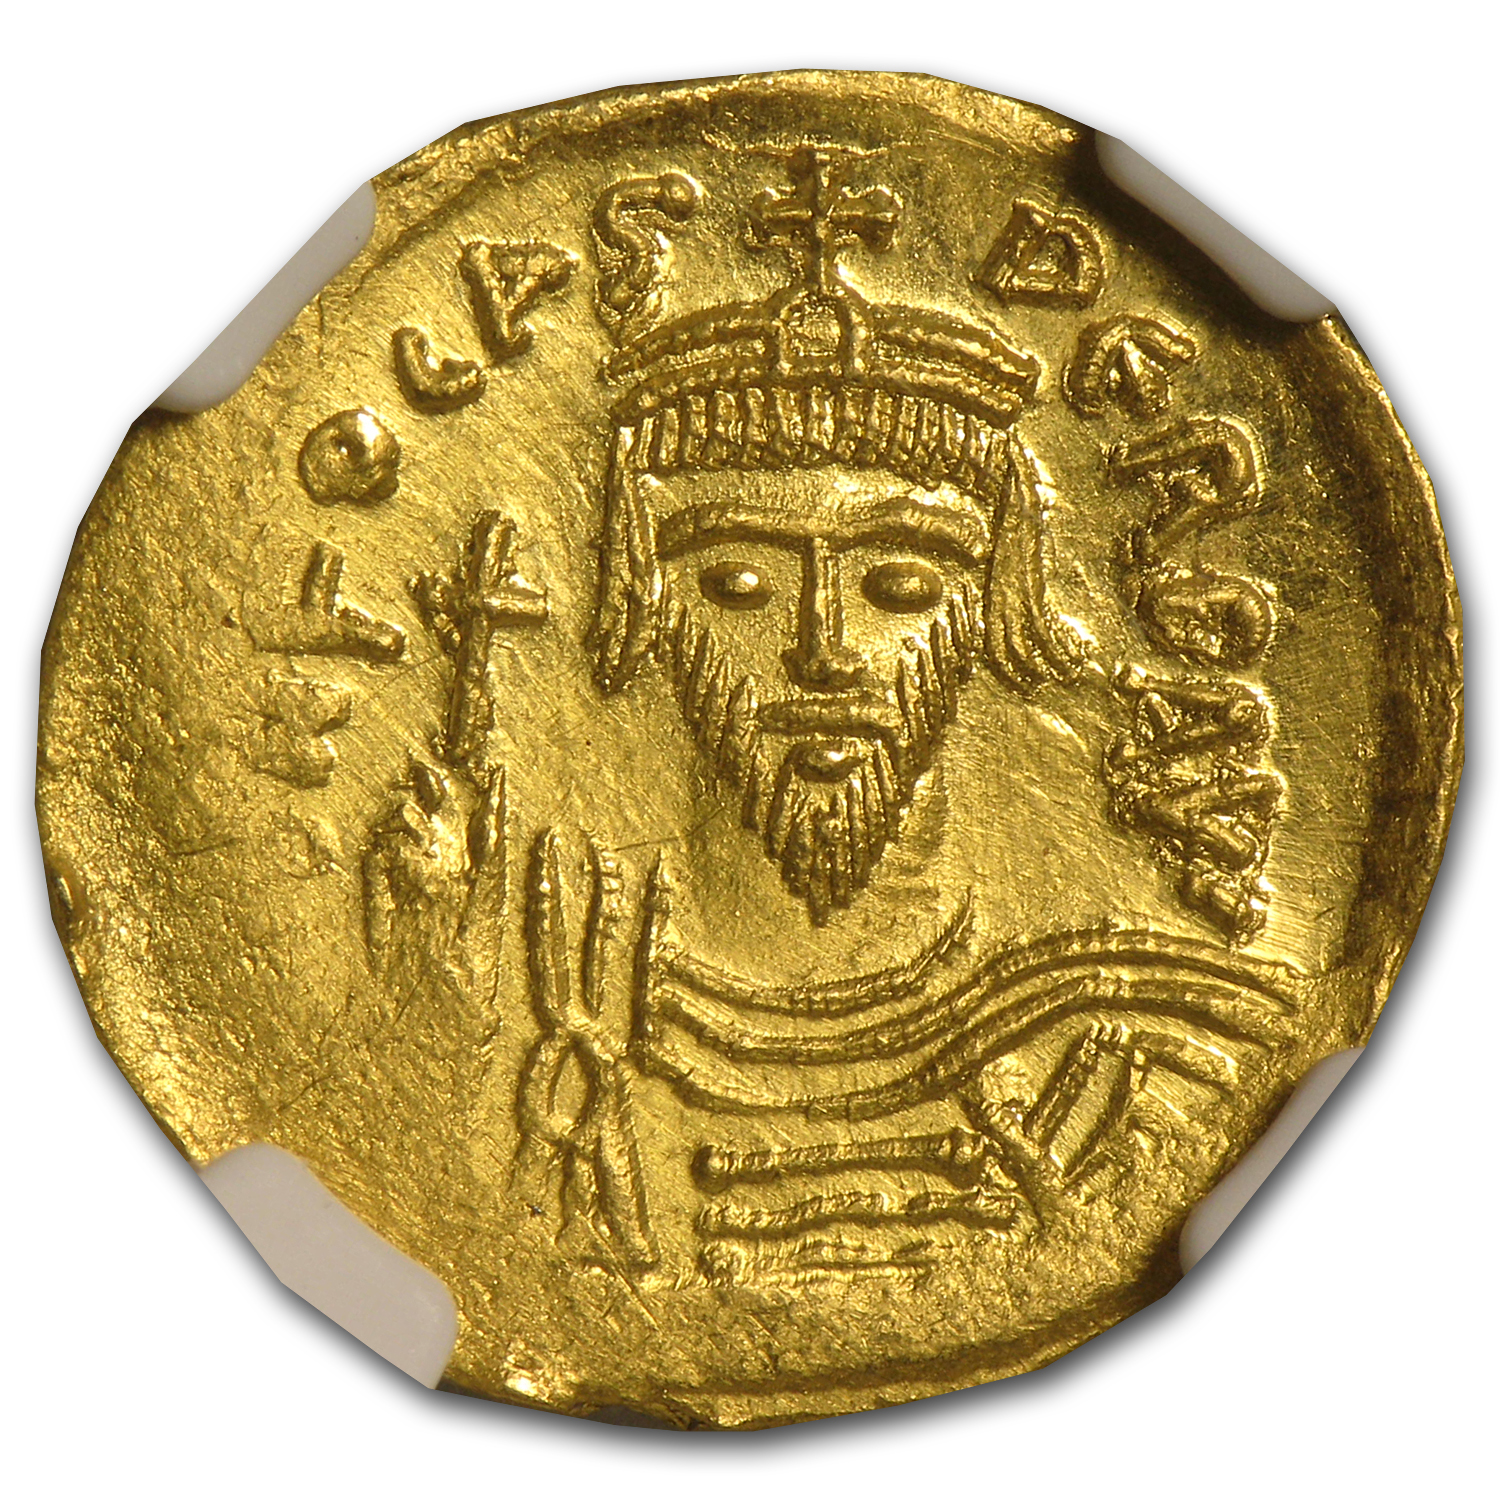 Byzantine Gold Emperor Phocas MS NGC (602-610 AD)